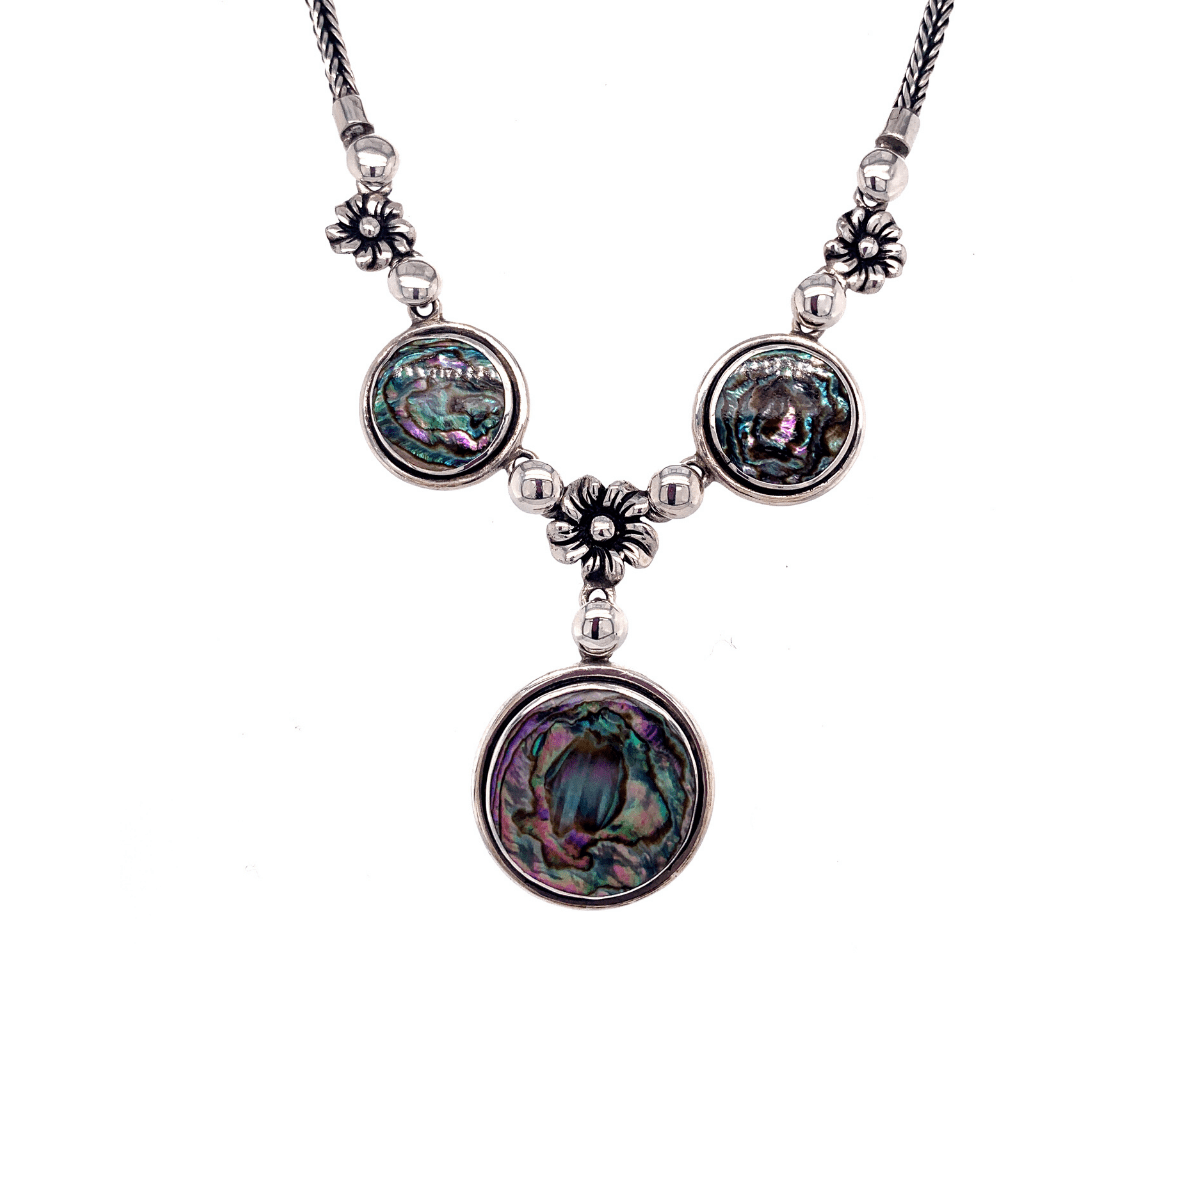 Abalone Shell Disks & Flowers Sterling Silver Necklace - Qinti - The Peruvian Shop